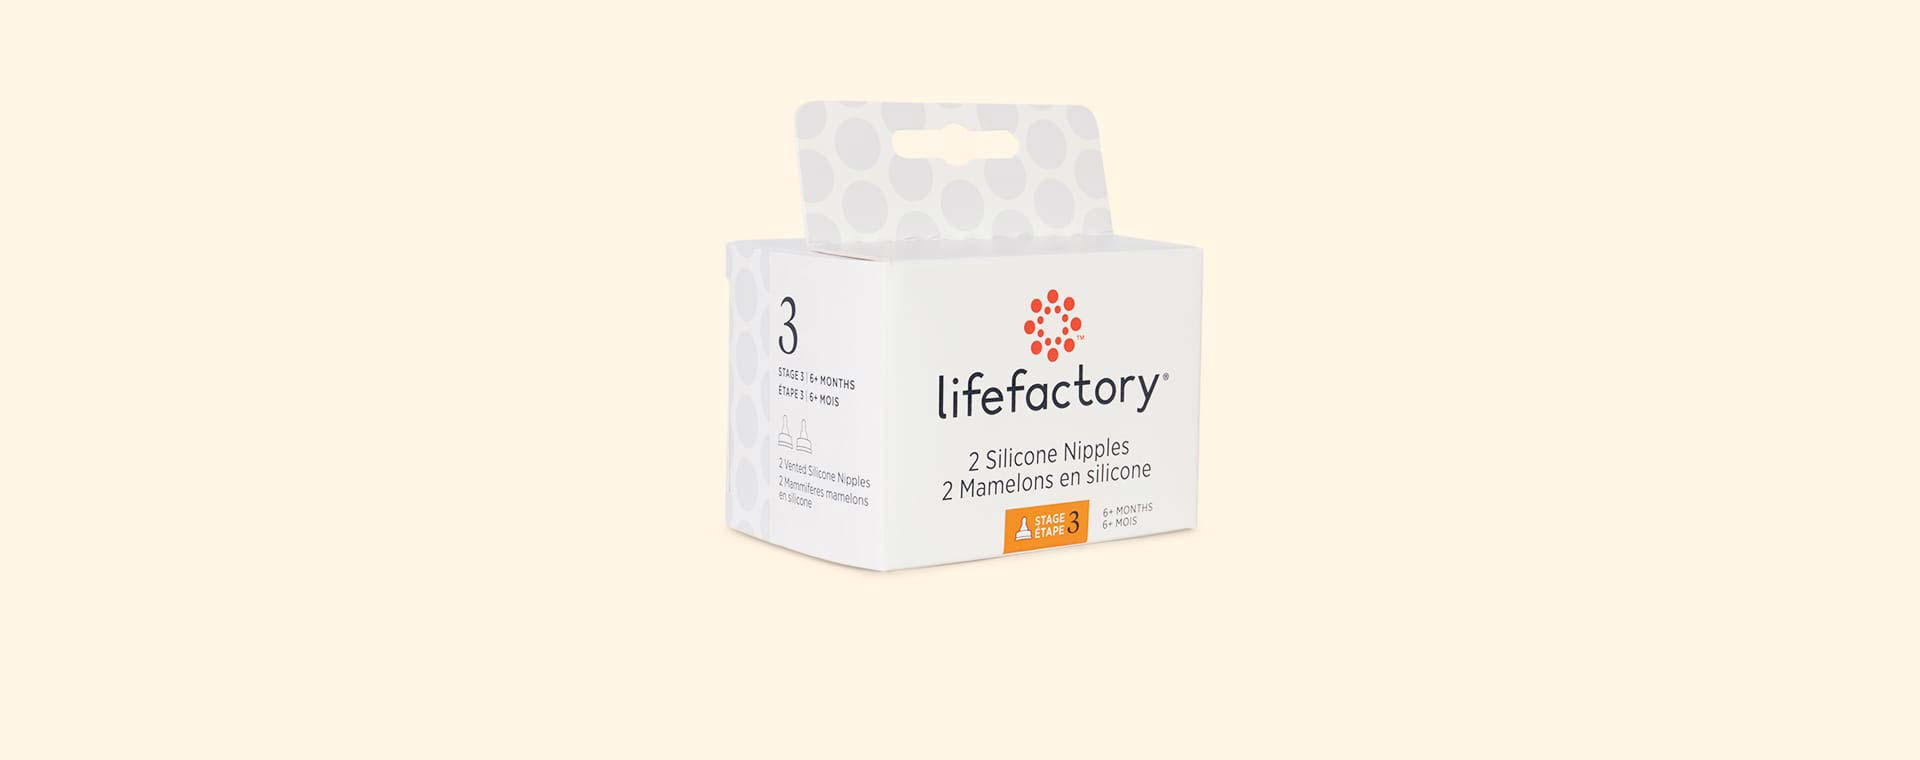 Clear Lifefactory Stage 3 Teat